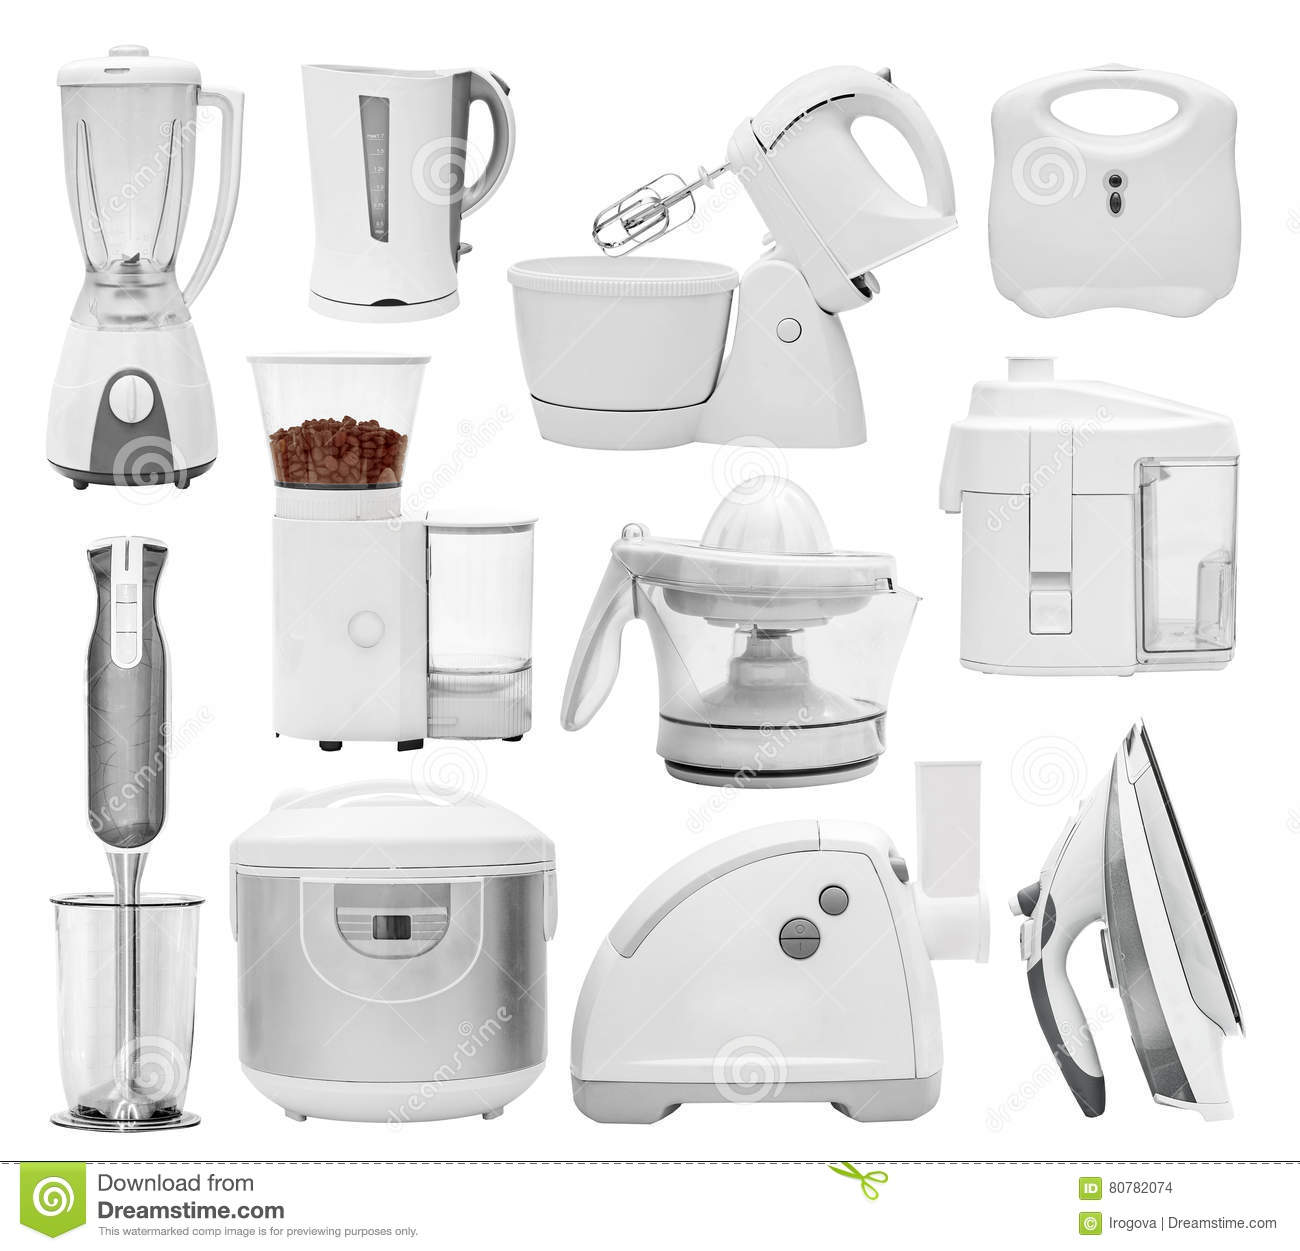 Kitchen equipment and their uses - Set Of Different Types Of Kitchen Appliances